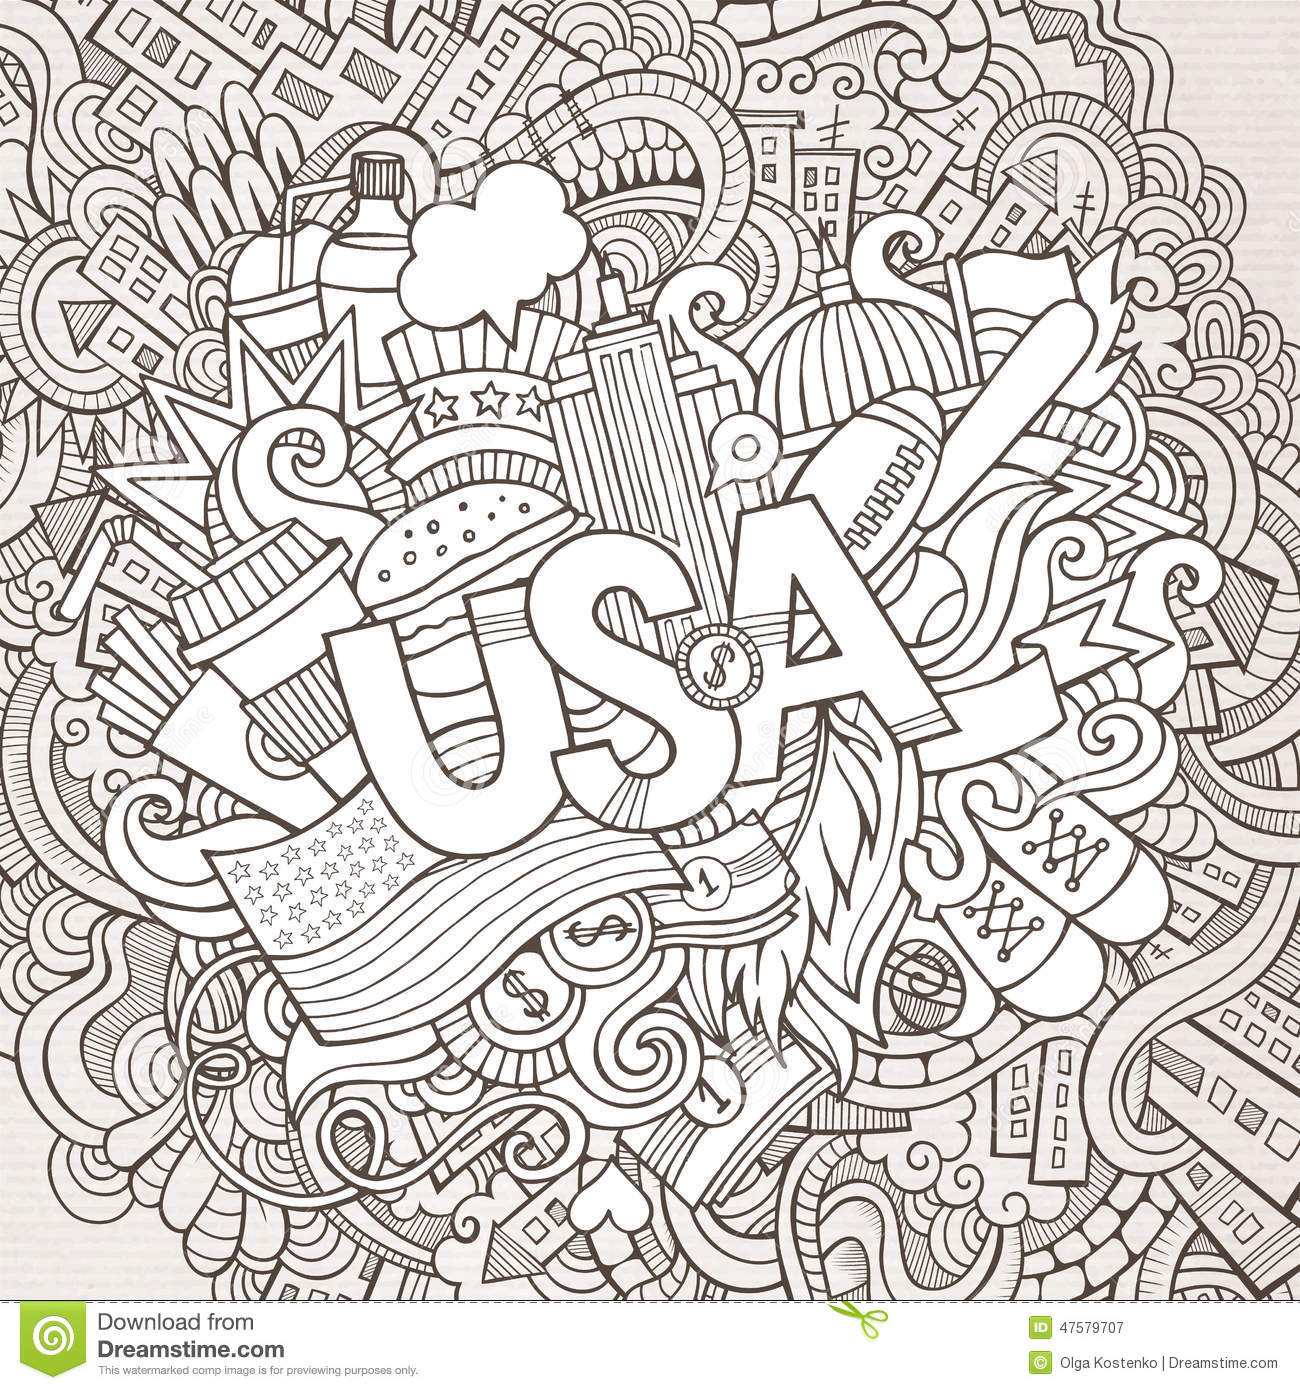 Stock vector music hand lettering and doodles elements - Usa Hand Lettering And Doodles Elements Background Royalty Free Stock Photography